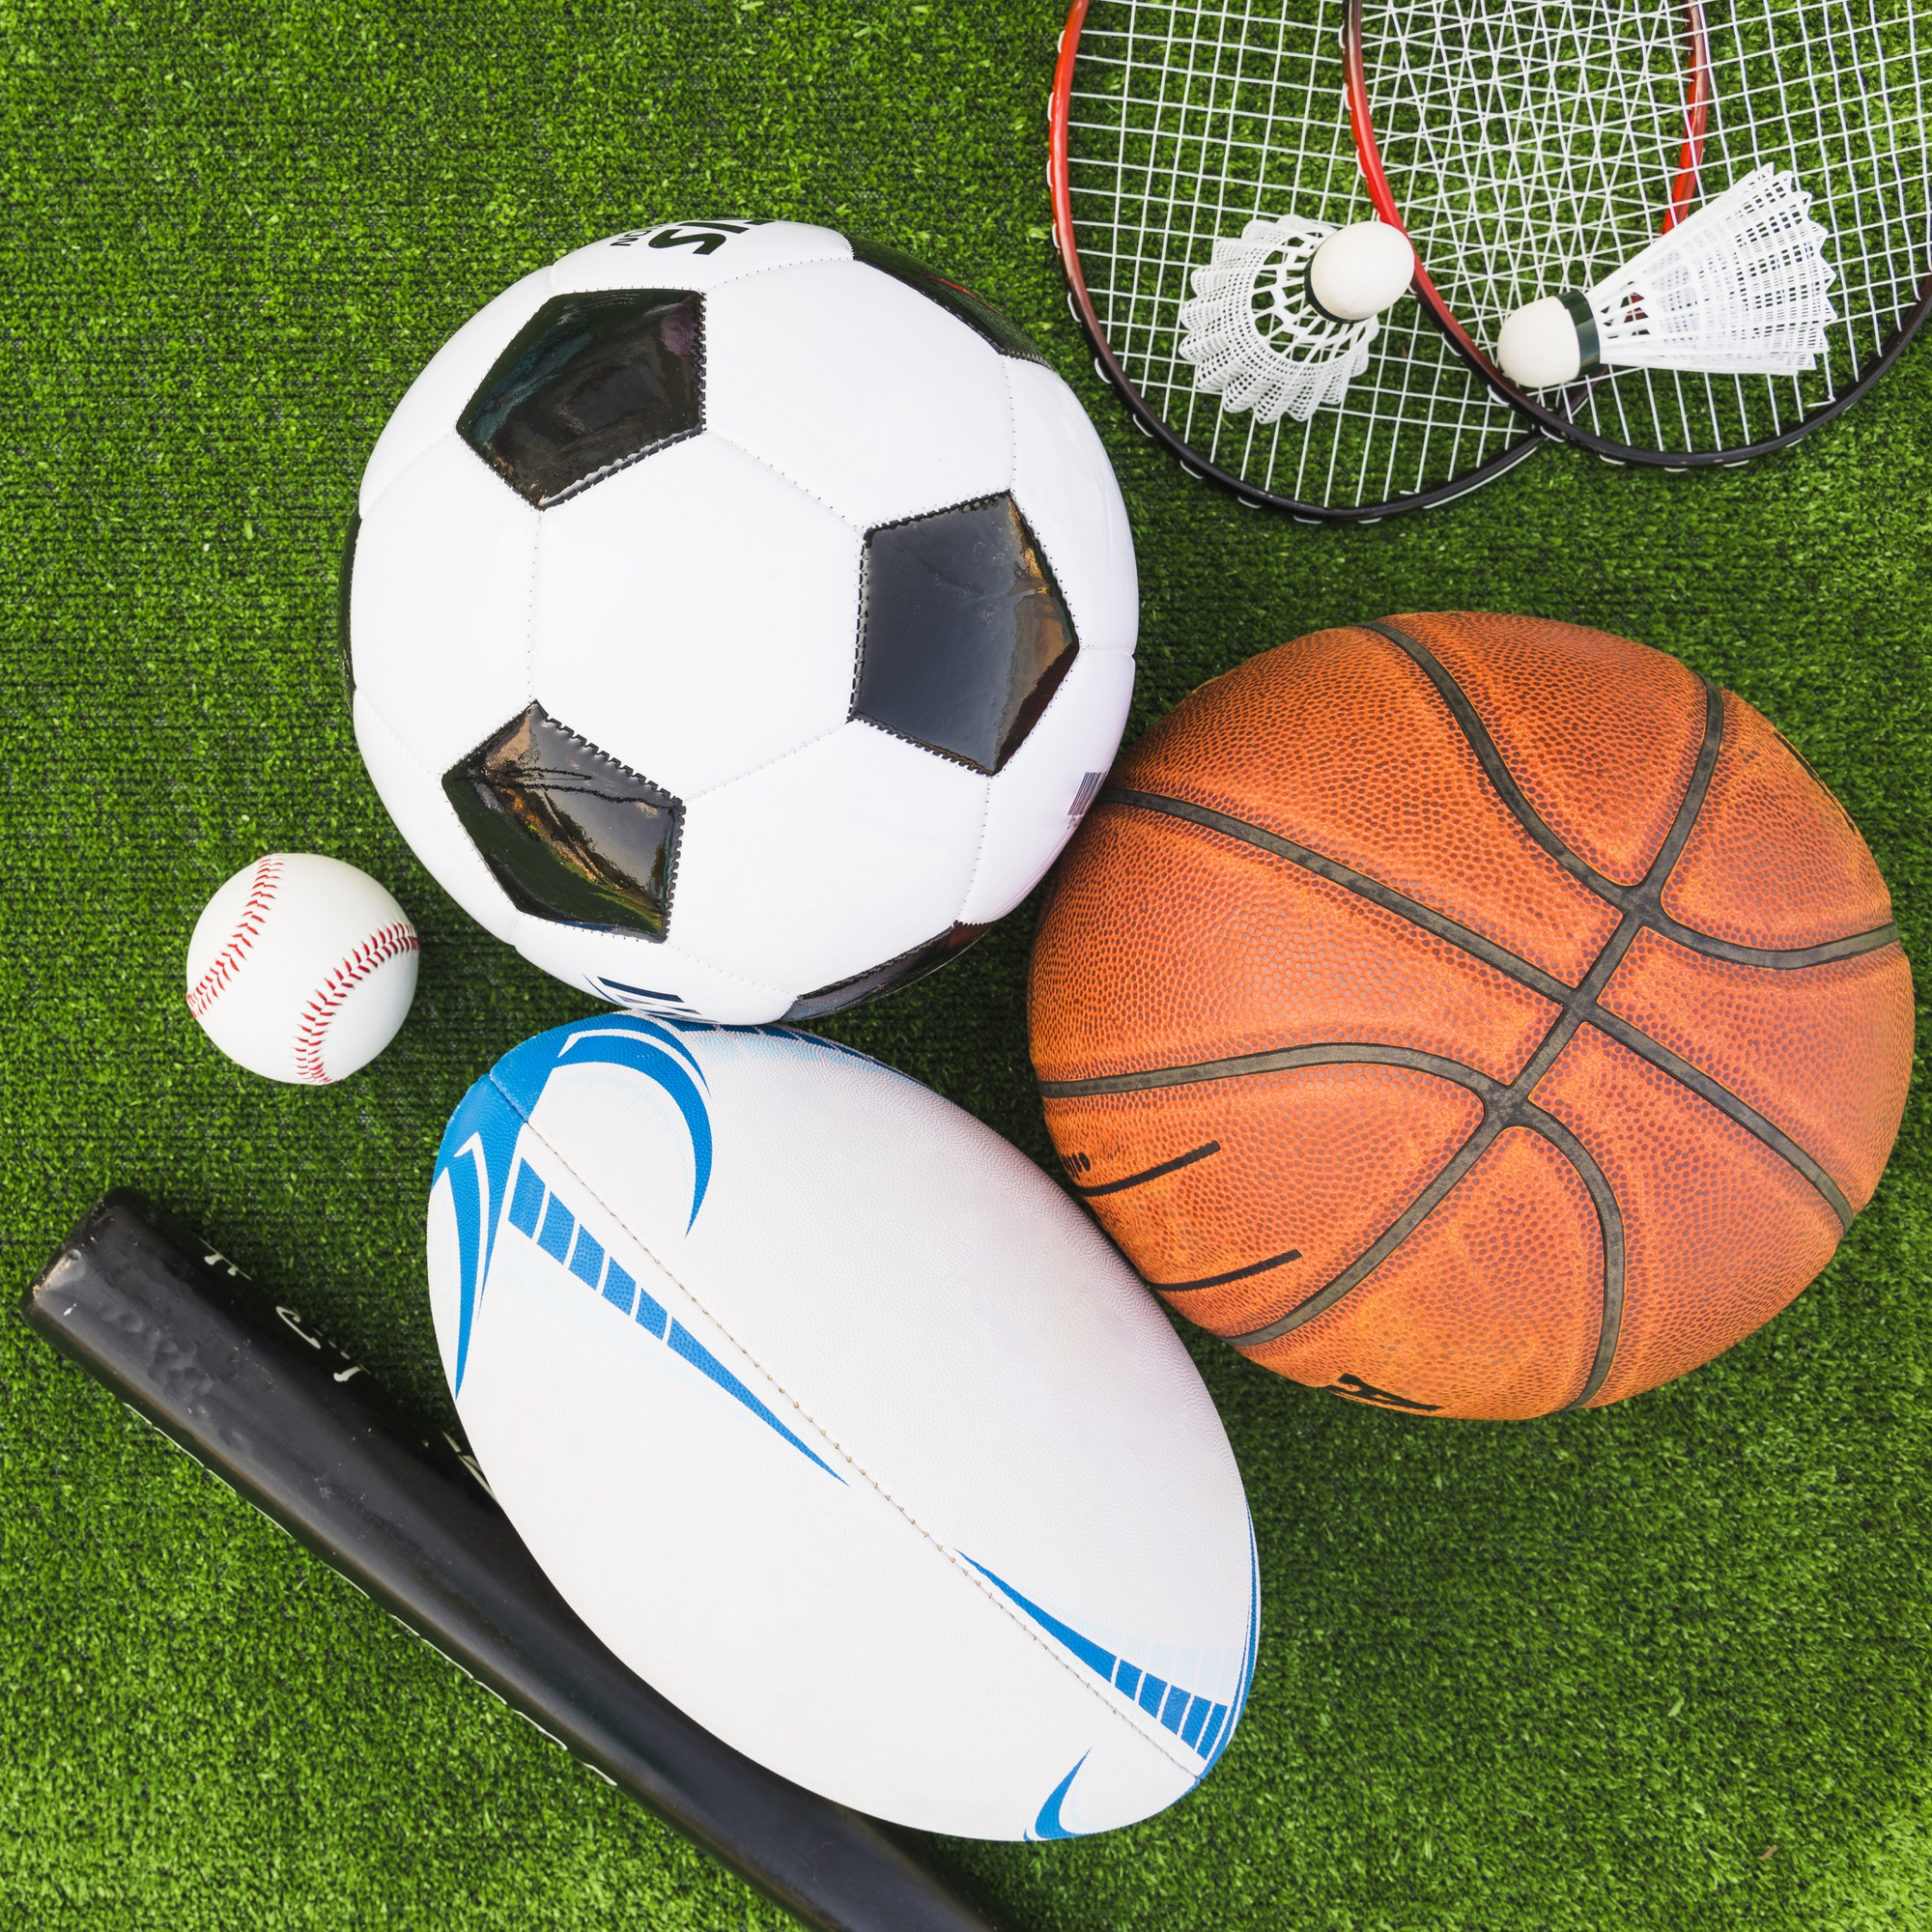 An overhead view of different type of sports equipment on green turf